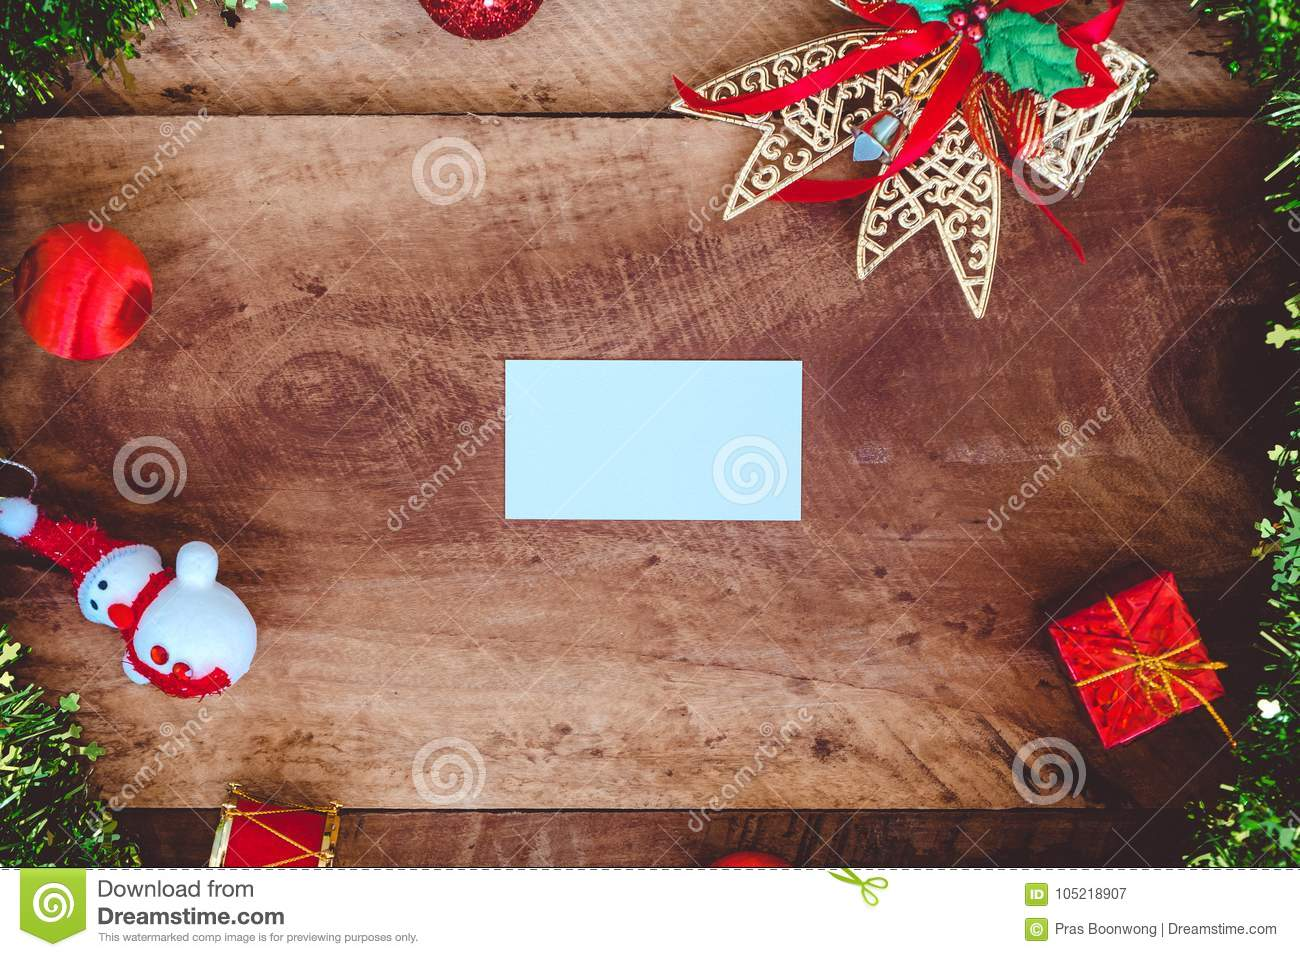 top view mockup image of white blank name card with christmas decorations - Christmas Decorations Names